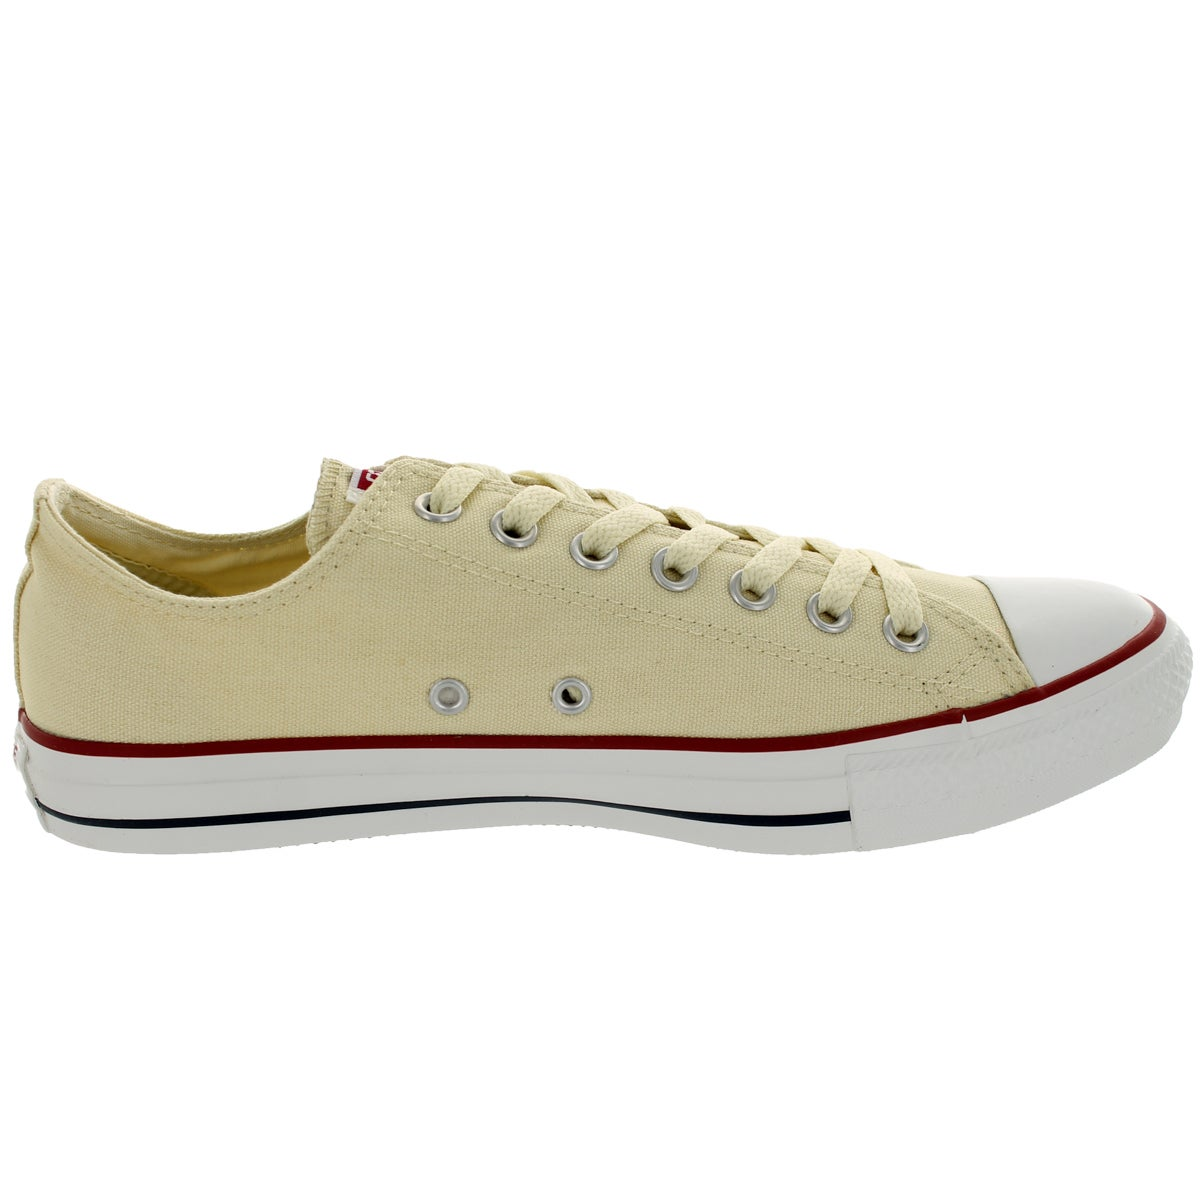 3bb0ad0a1d89 Shop Converse Unisex Chuck Taylor All Star Ox Natural White Basketball Shoe  - Free Shipping Today - Overstock.com - 12319051